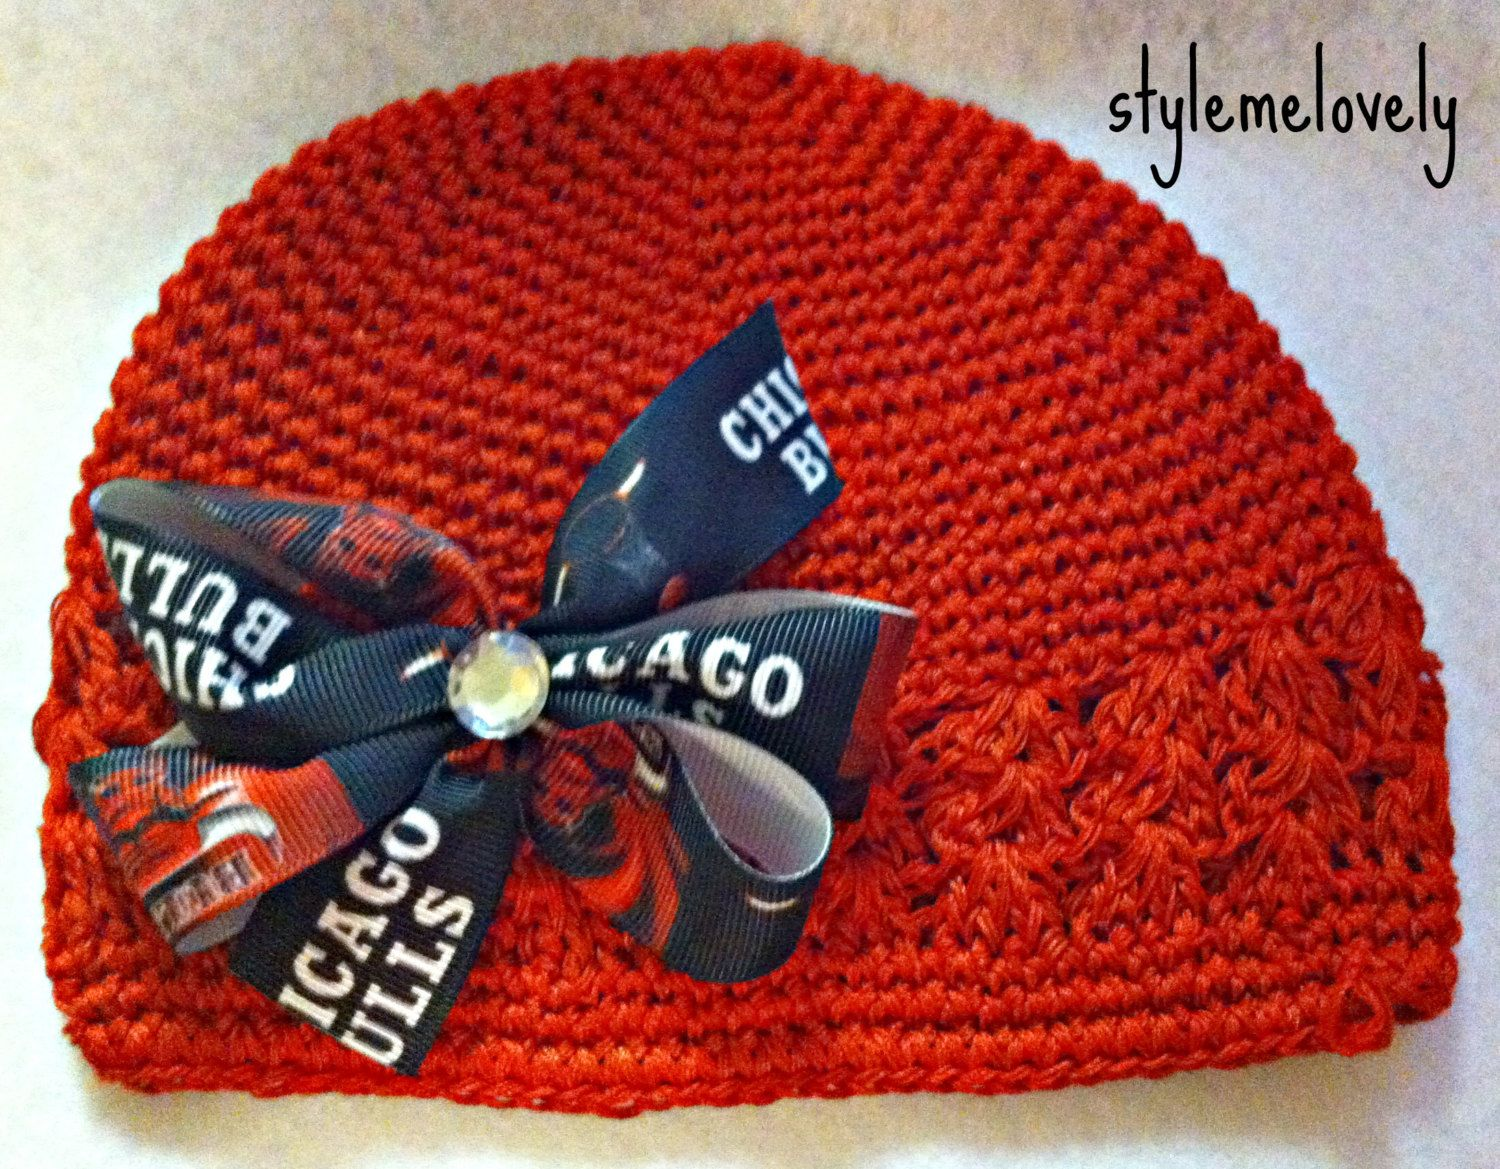 Chicago Bulls Baby Girl Boutique Bow Crocheted Hat by StyleMeLovely00 on Etsy https://www.etsy.com/listing/180579326/chicago-bulls-baby-girl-boutique-bow